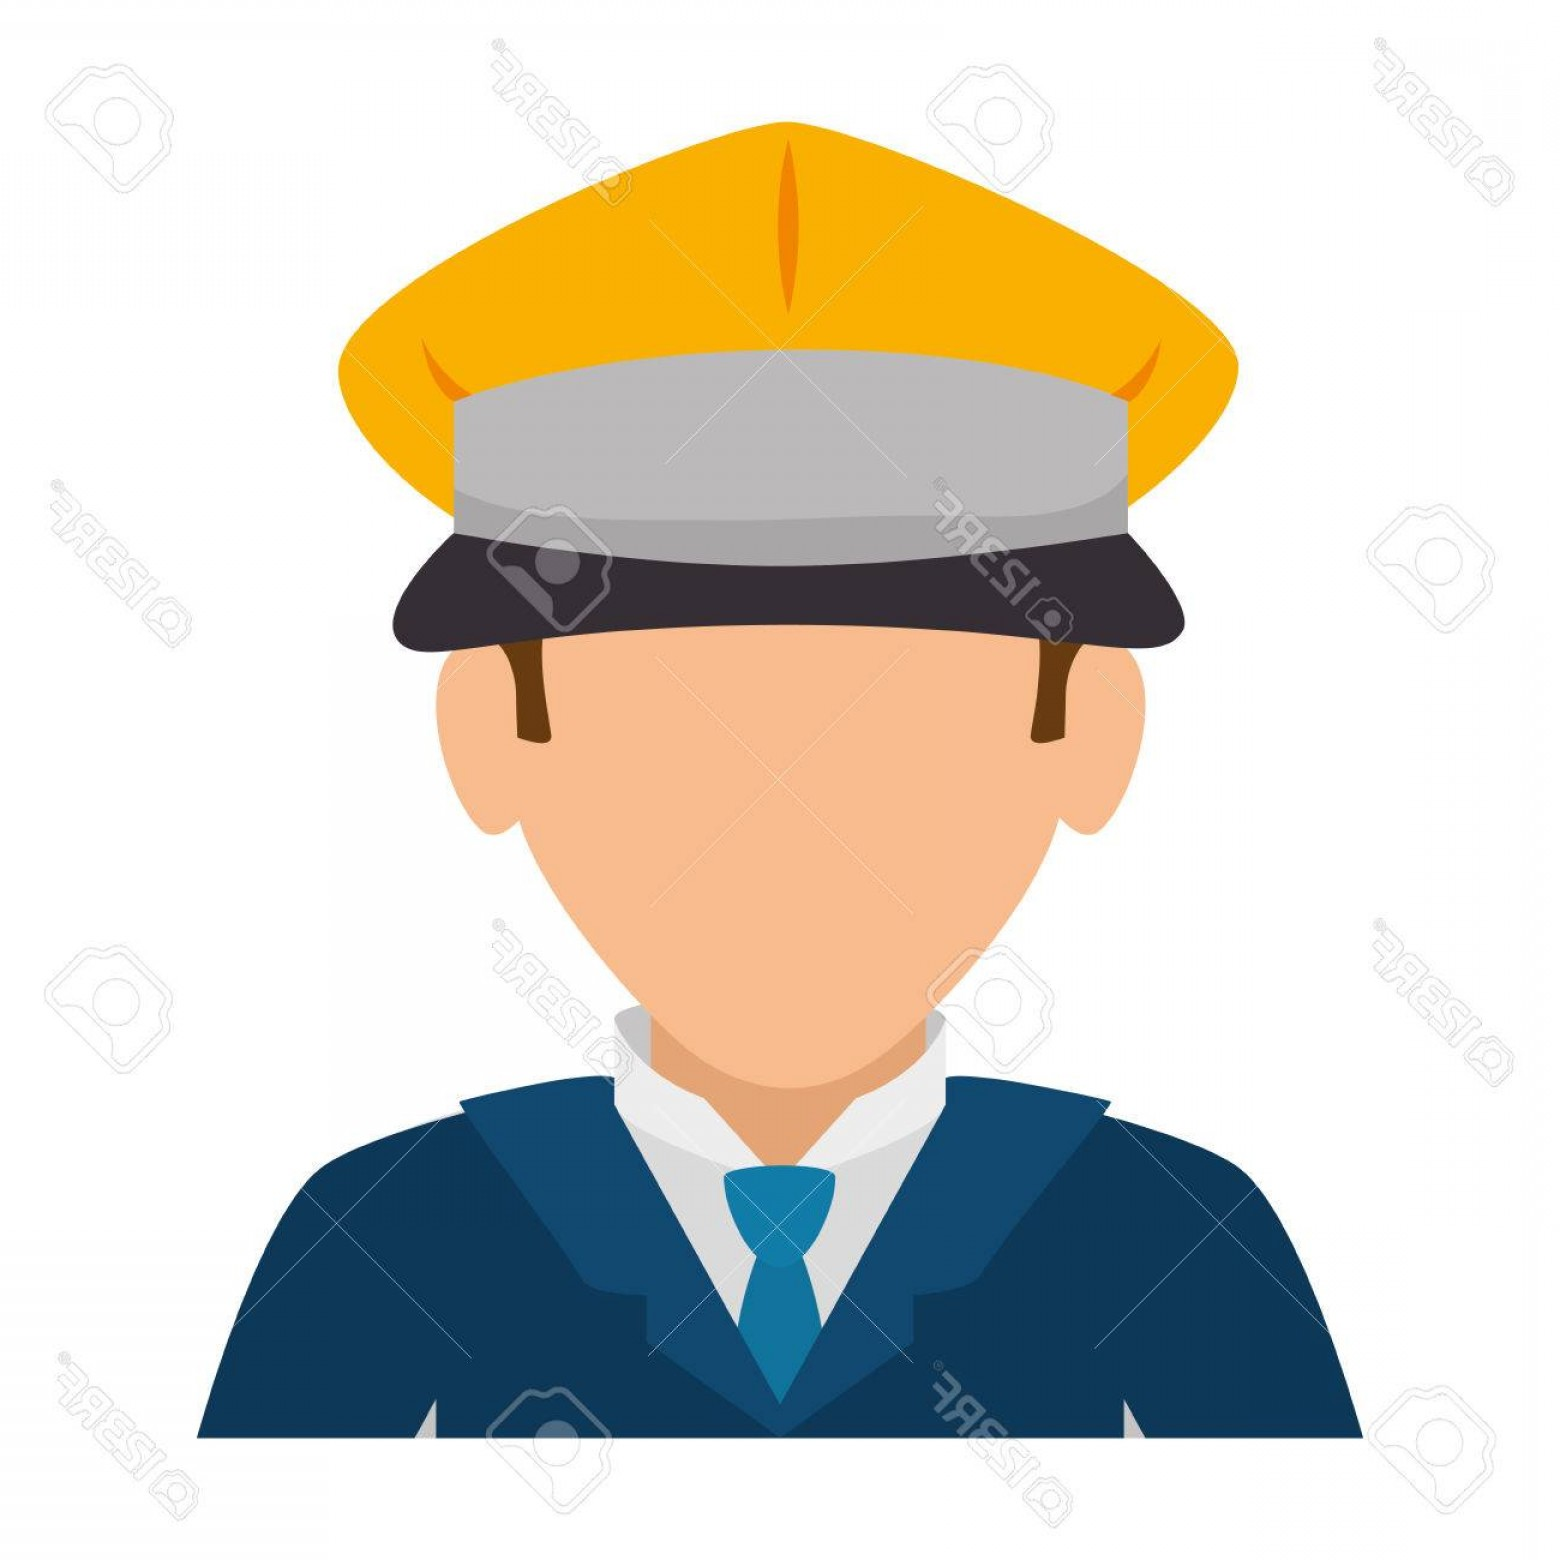 Chauffer Driver Cap Vector: Photostock Vector Man Hat Suit Tie Chauffer Driver Service Male Guy Cartoon Vector Illustration